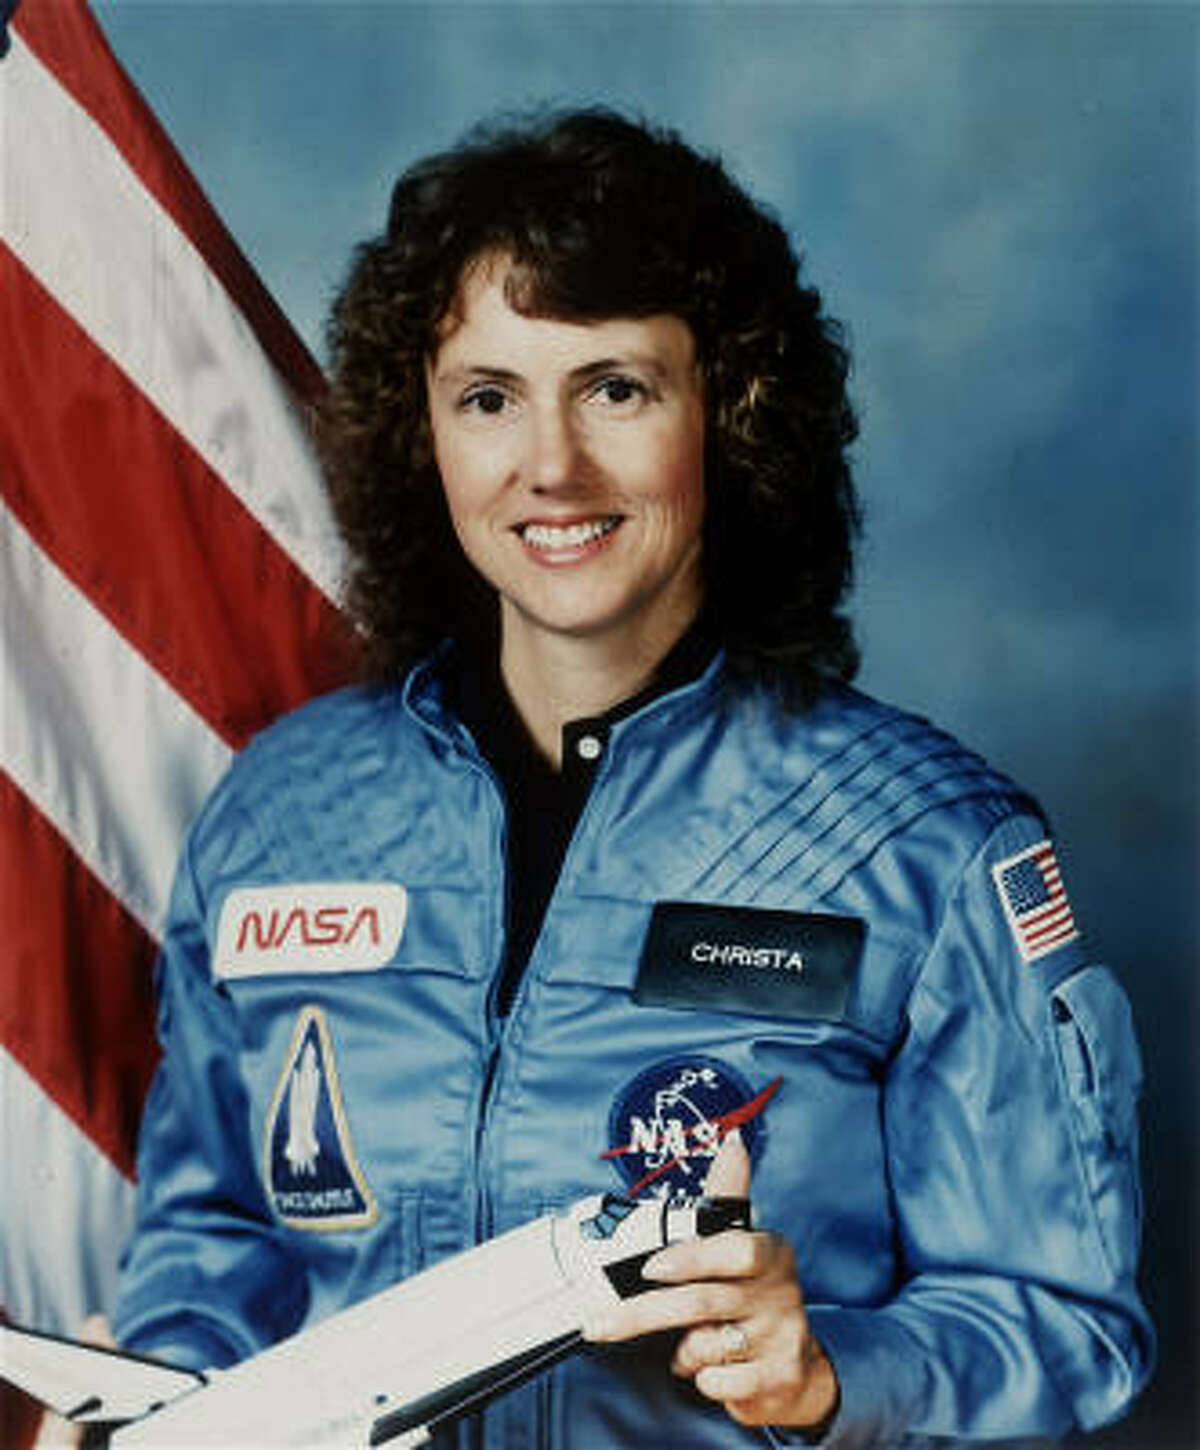 Christa McAuliffe and six other astronauts perished on live TV when their Challenger shuttle exploded on liftoff.